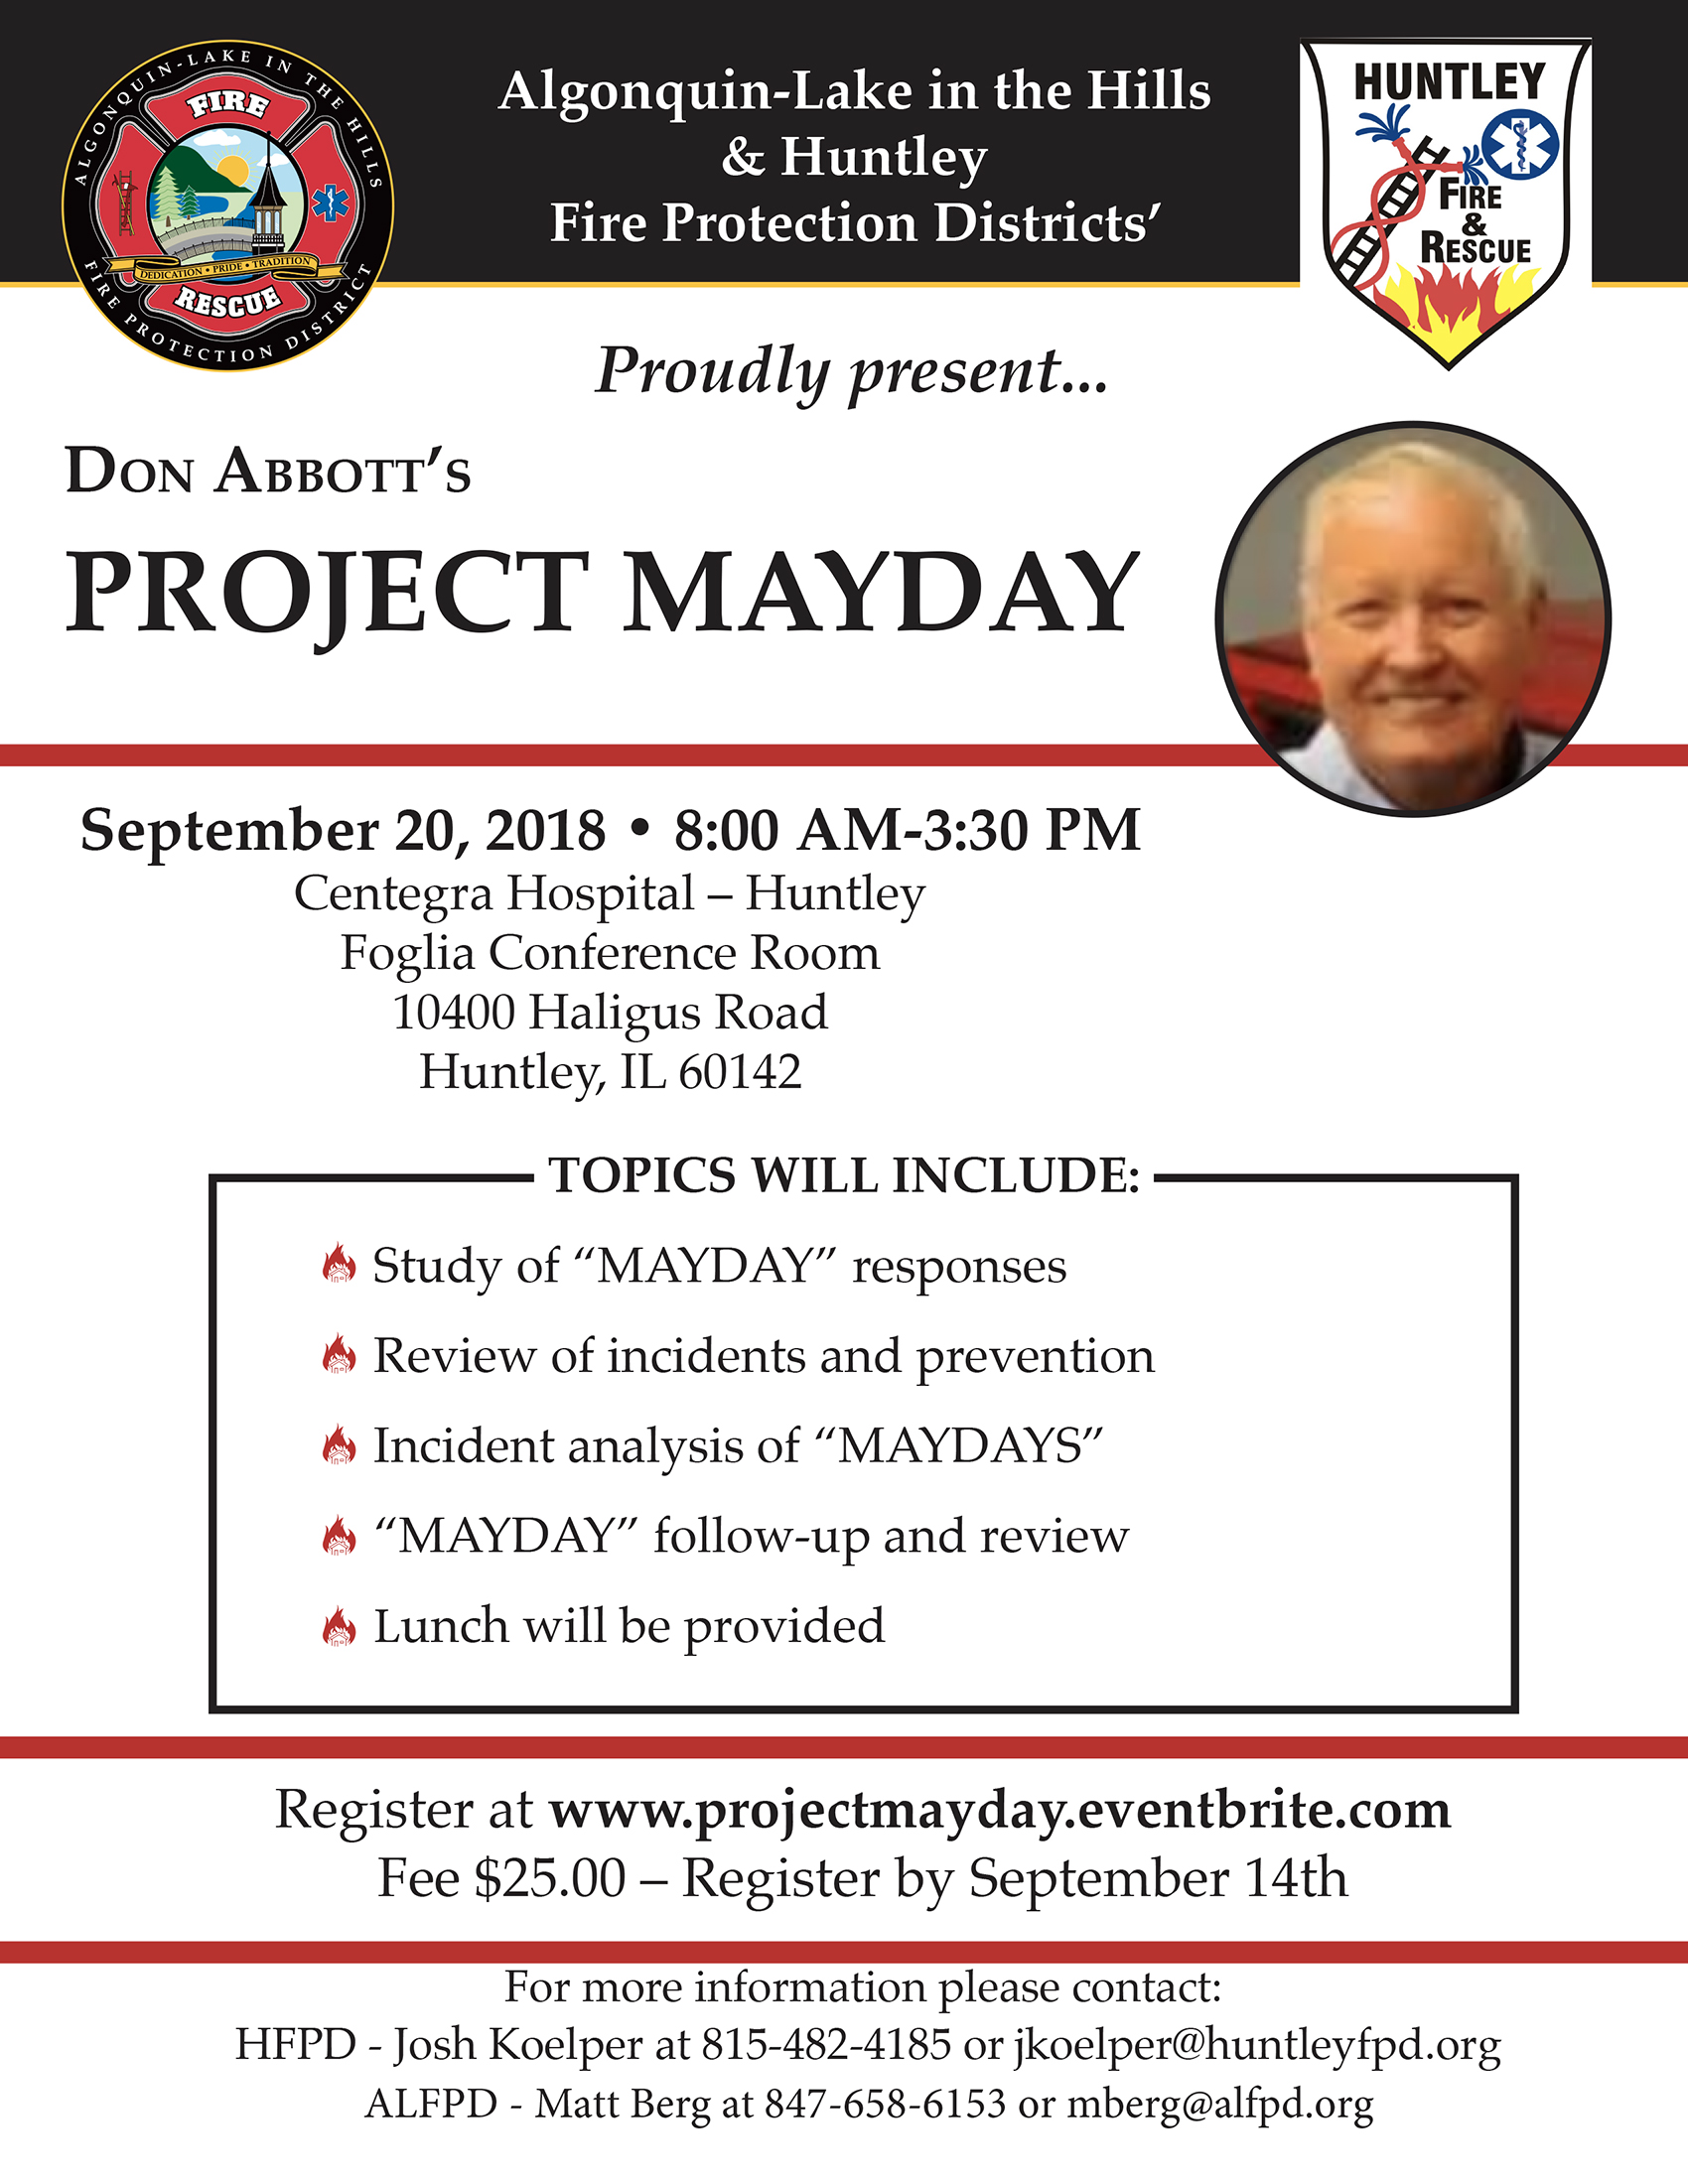 Don Abbott's Project Mayday